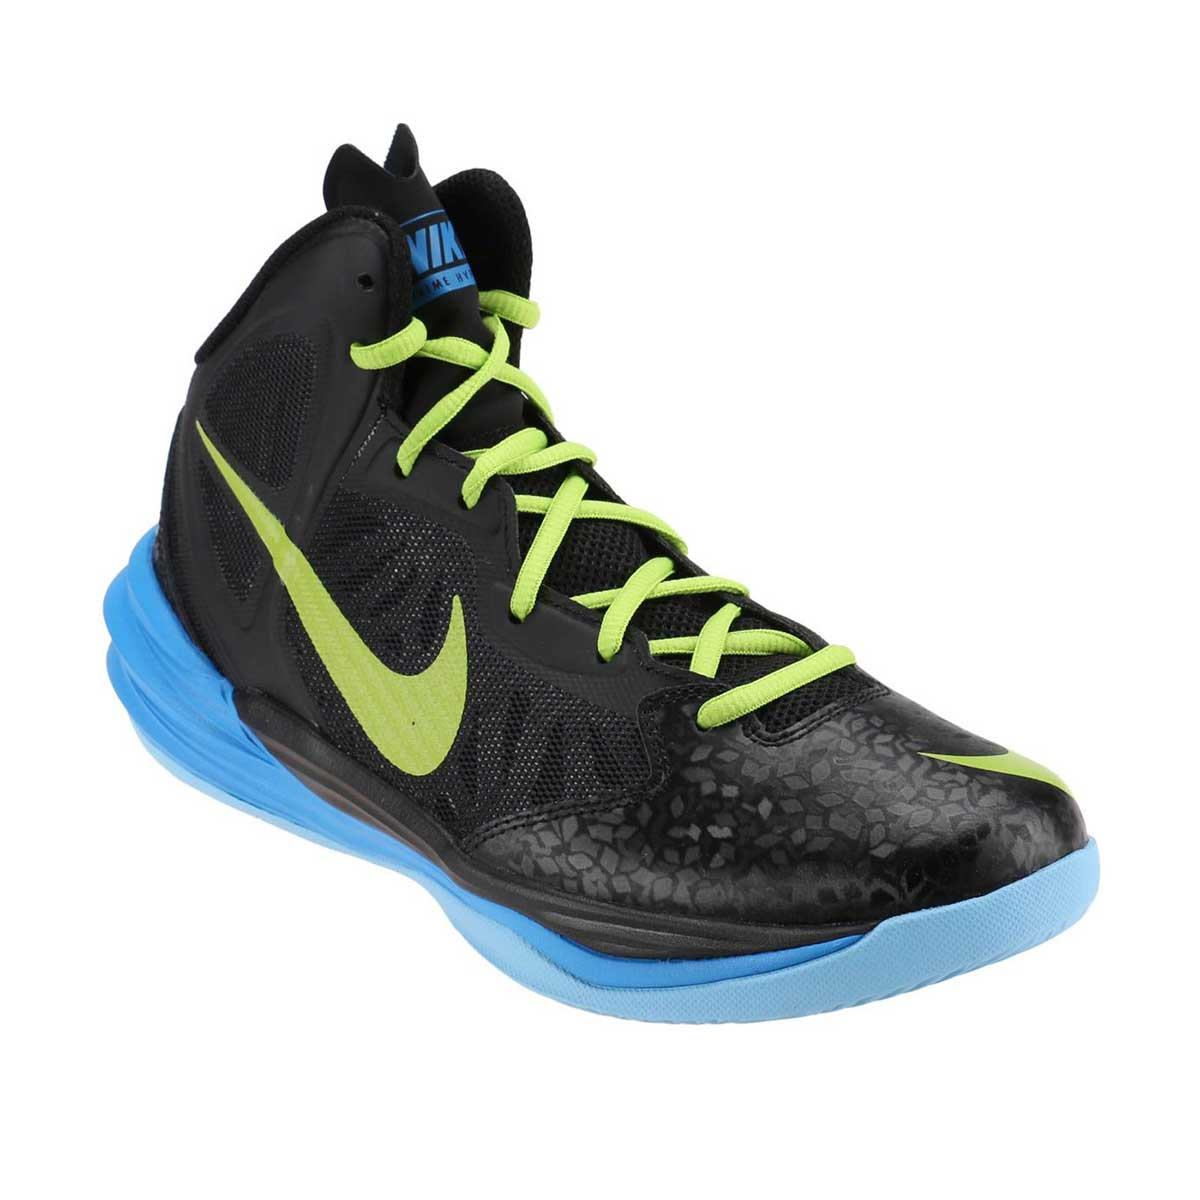 7cda77bd4841 Buy Nike Prime Hype DF Basketball Shoes India